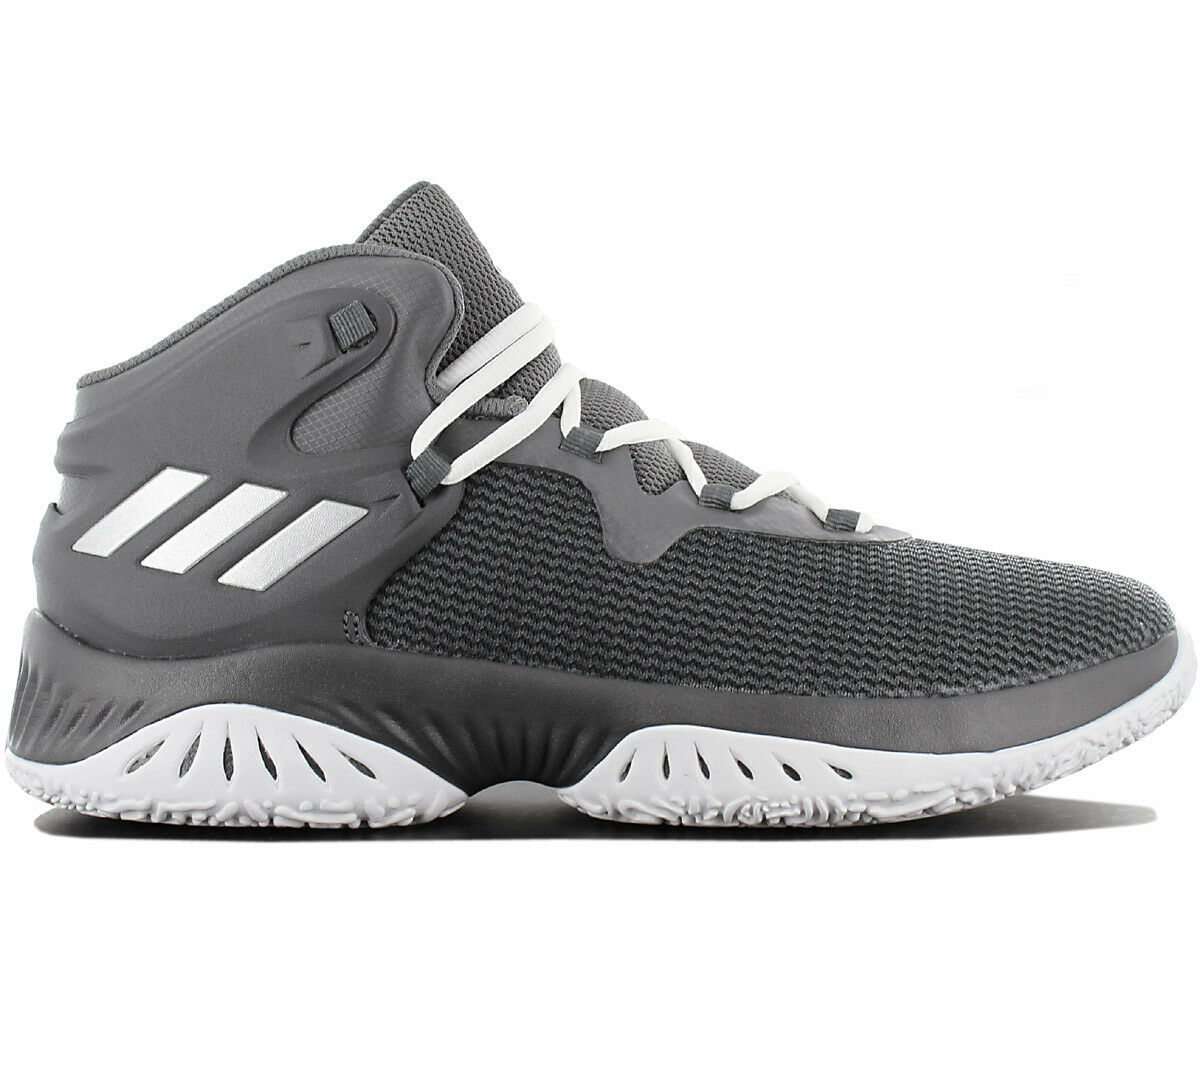 Adidas Explosive Bounce Men's Basketballshoe Basketball shoes Grey By3779